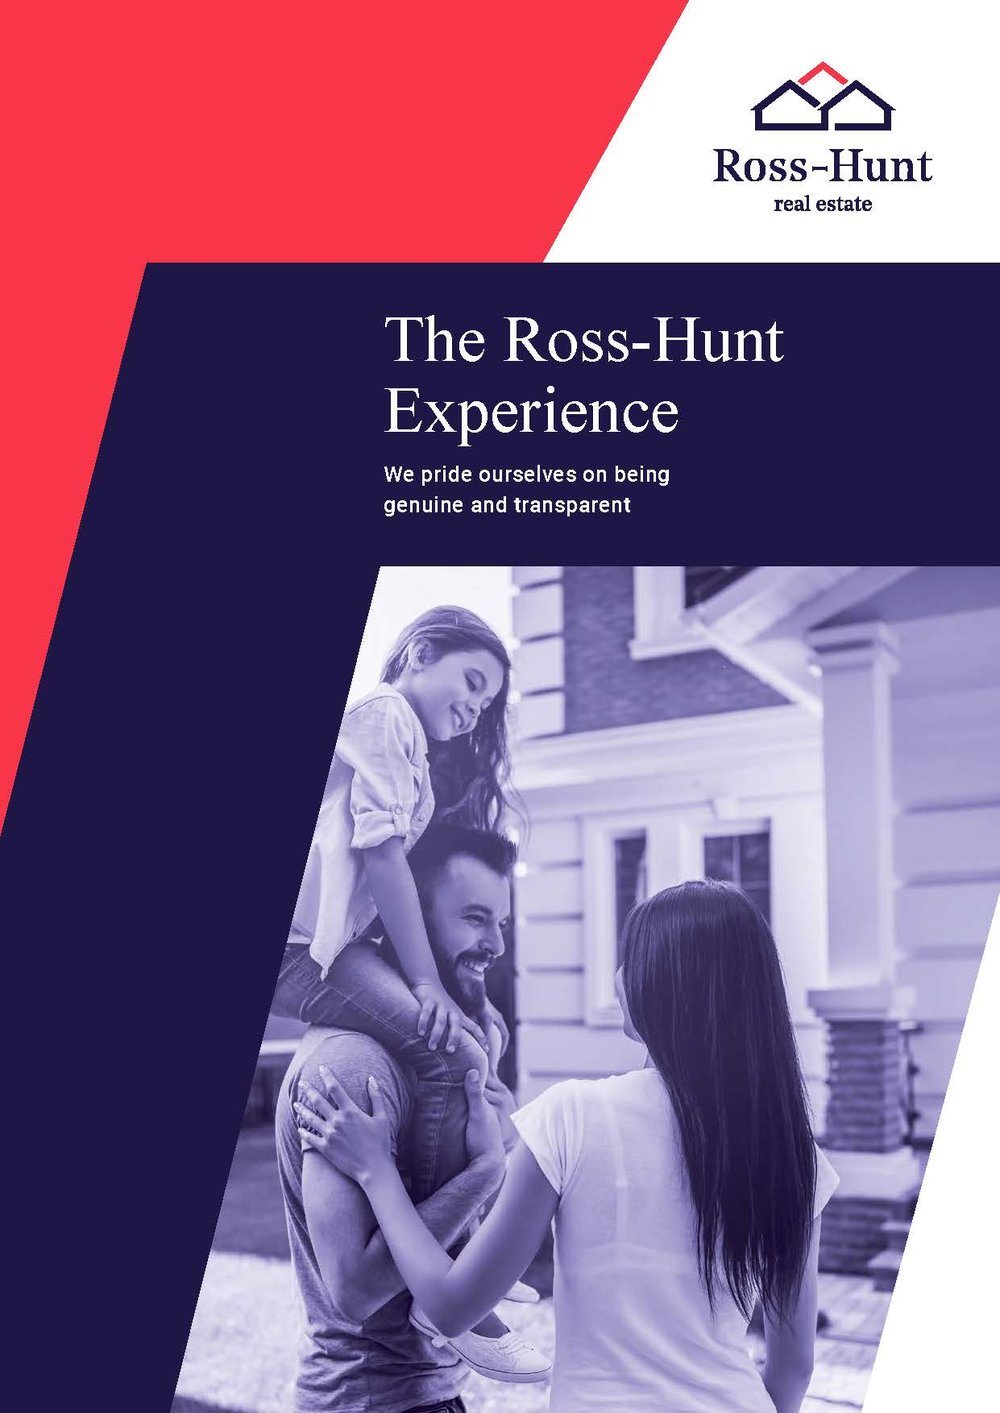 An introduction to Ross-Hunt and what we are all about. -